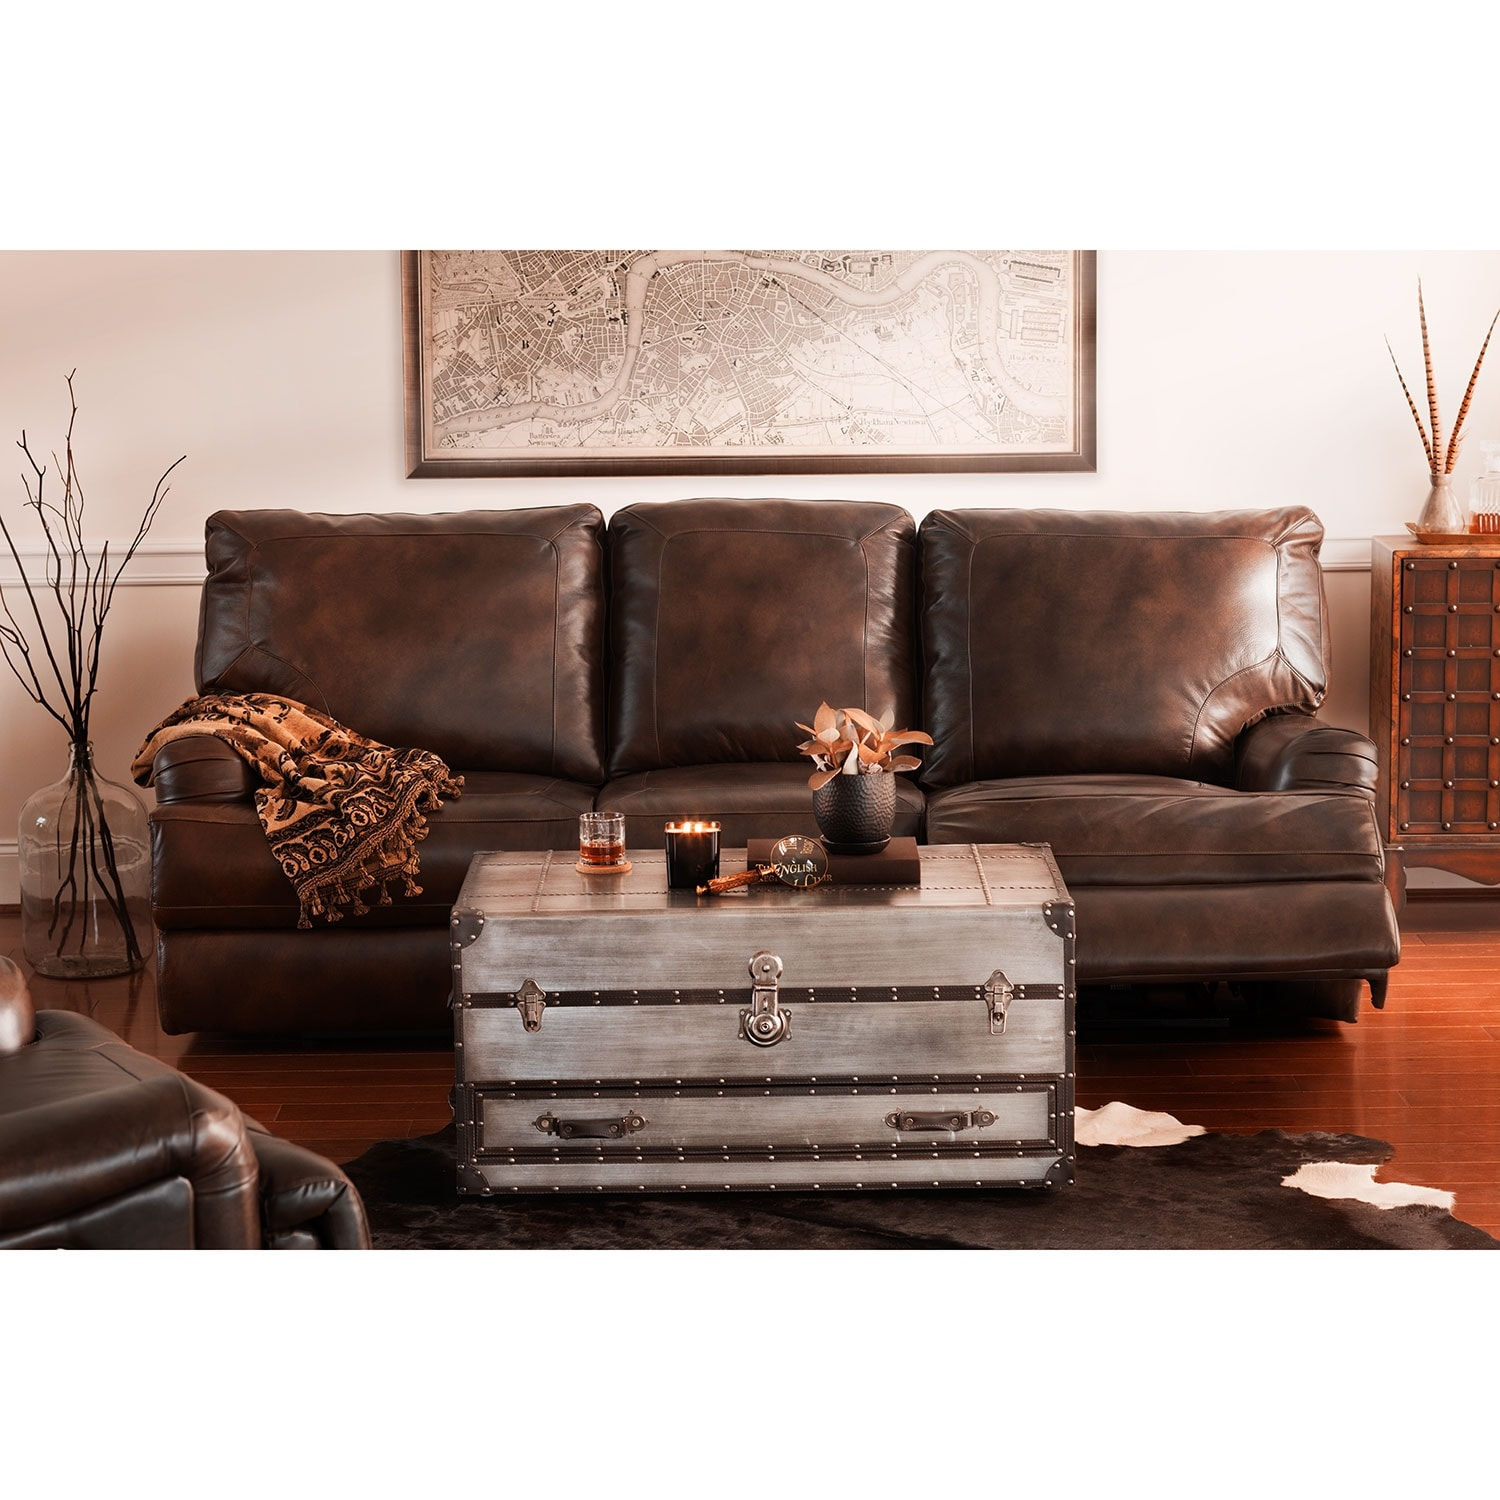 Living Room Sets For Sale Canada 100 Living Room With